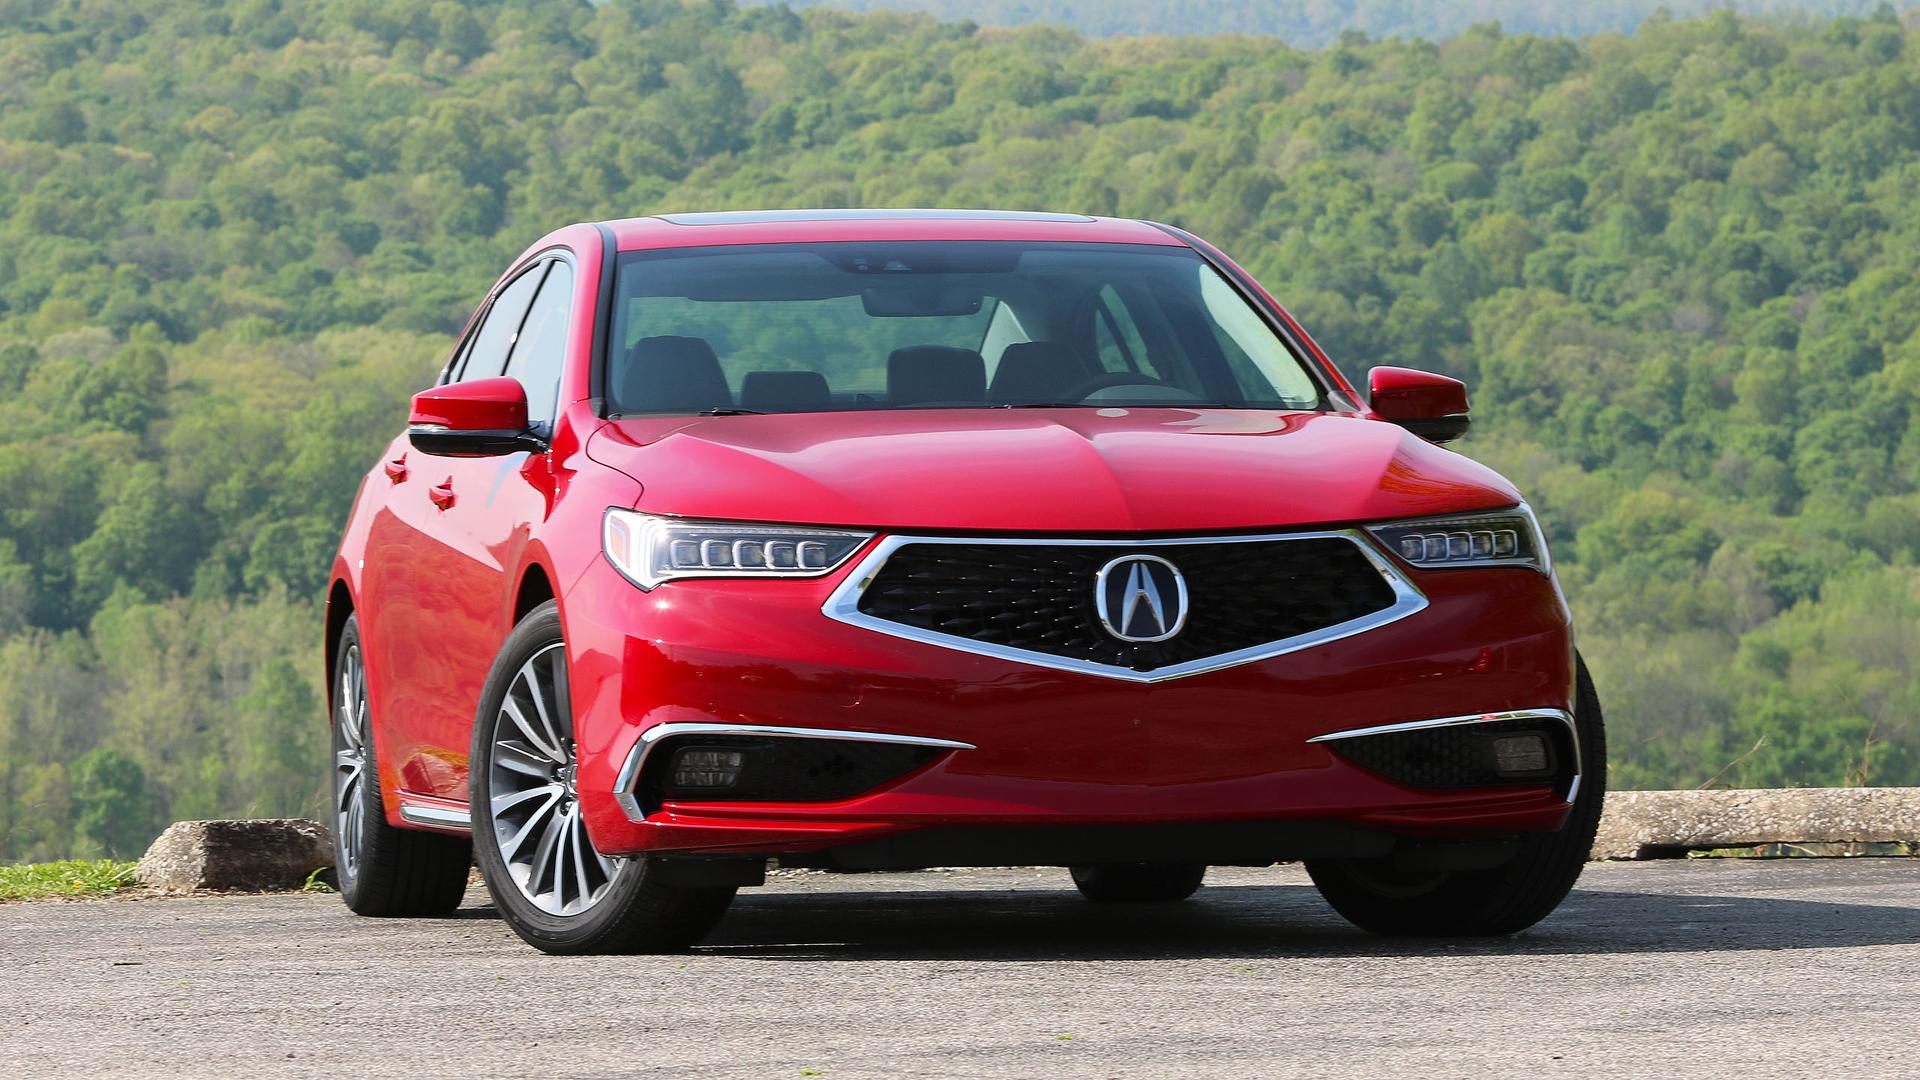 2018 Acura Tlx First Drive The Outlier Choice Gets Better Dual Clutch Transmission Diagram